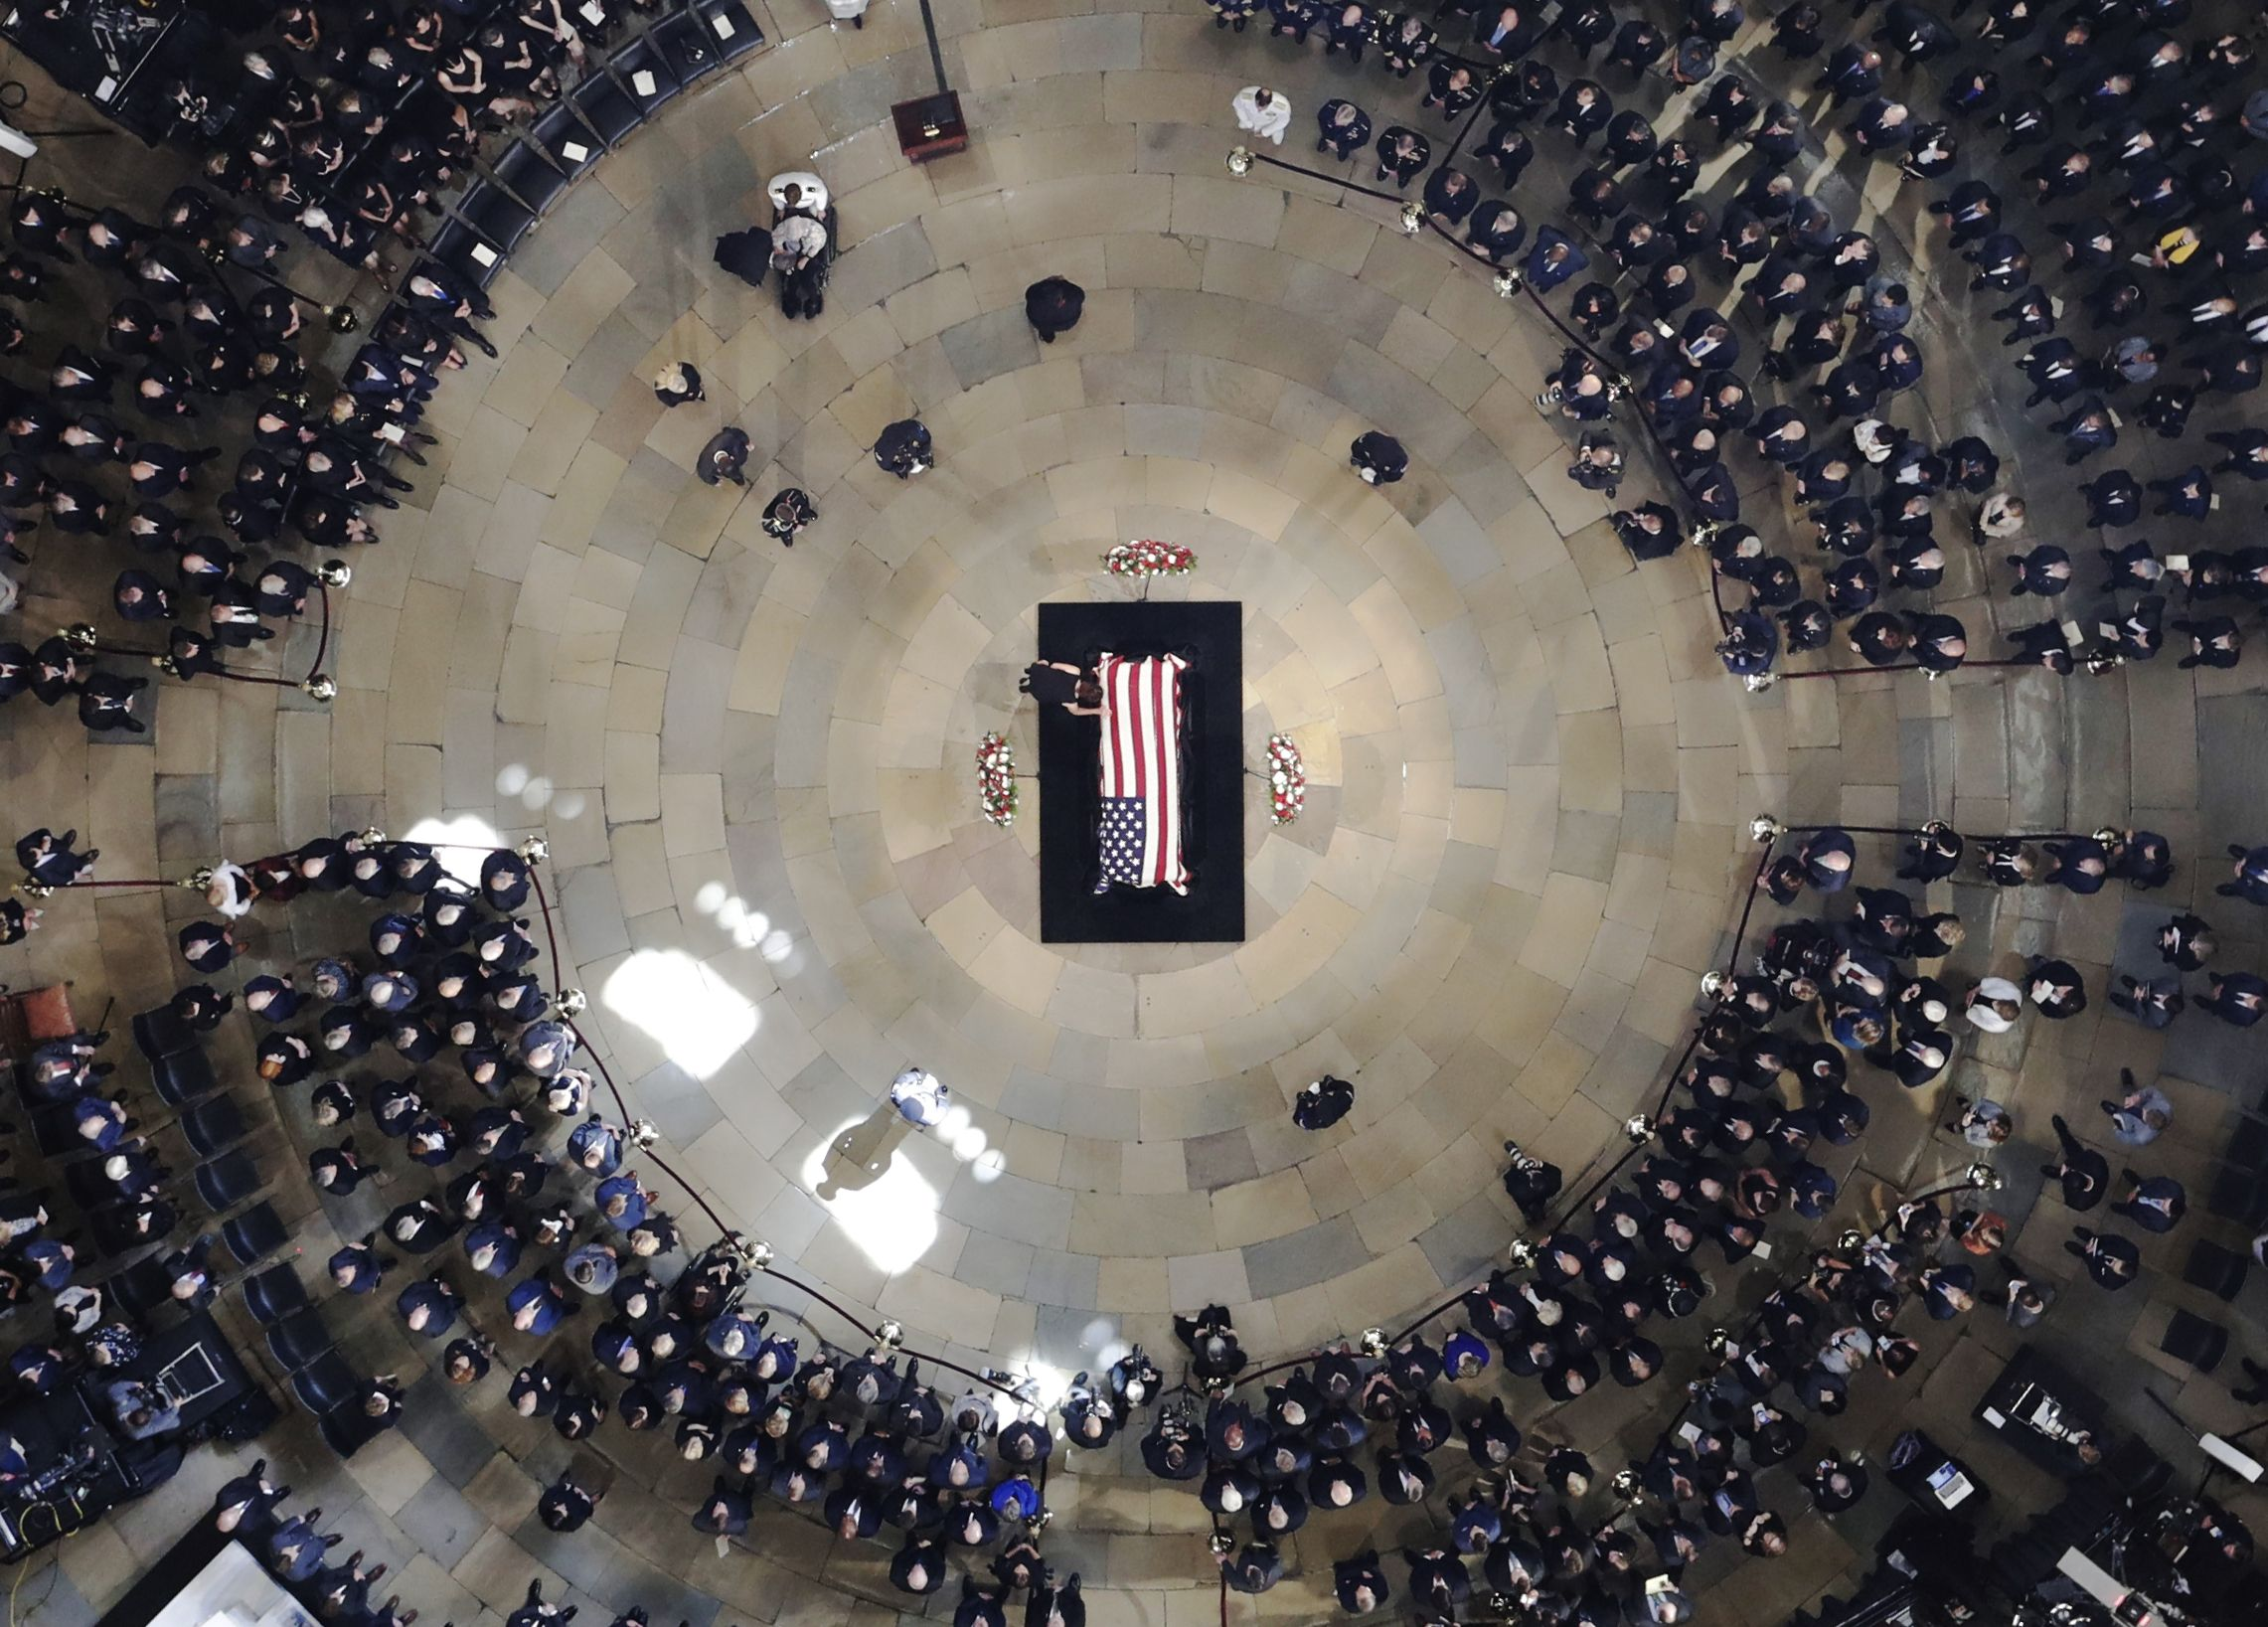 Sen. John McCain (R-AZ) Lies In State In The Rotunda Of U.S. Capitol